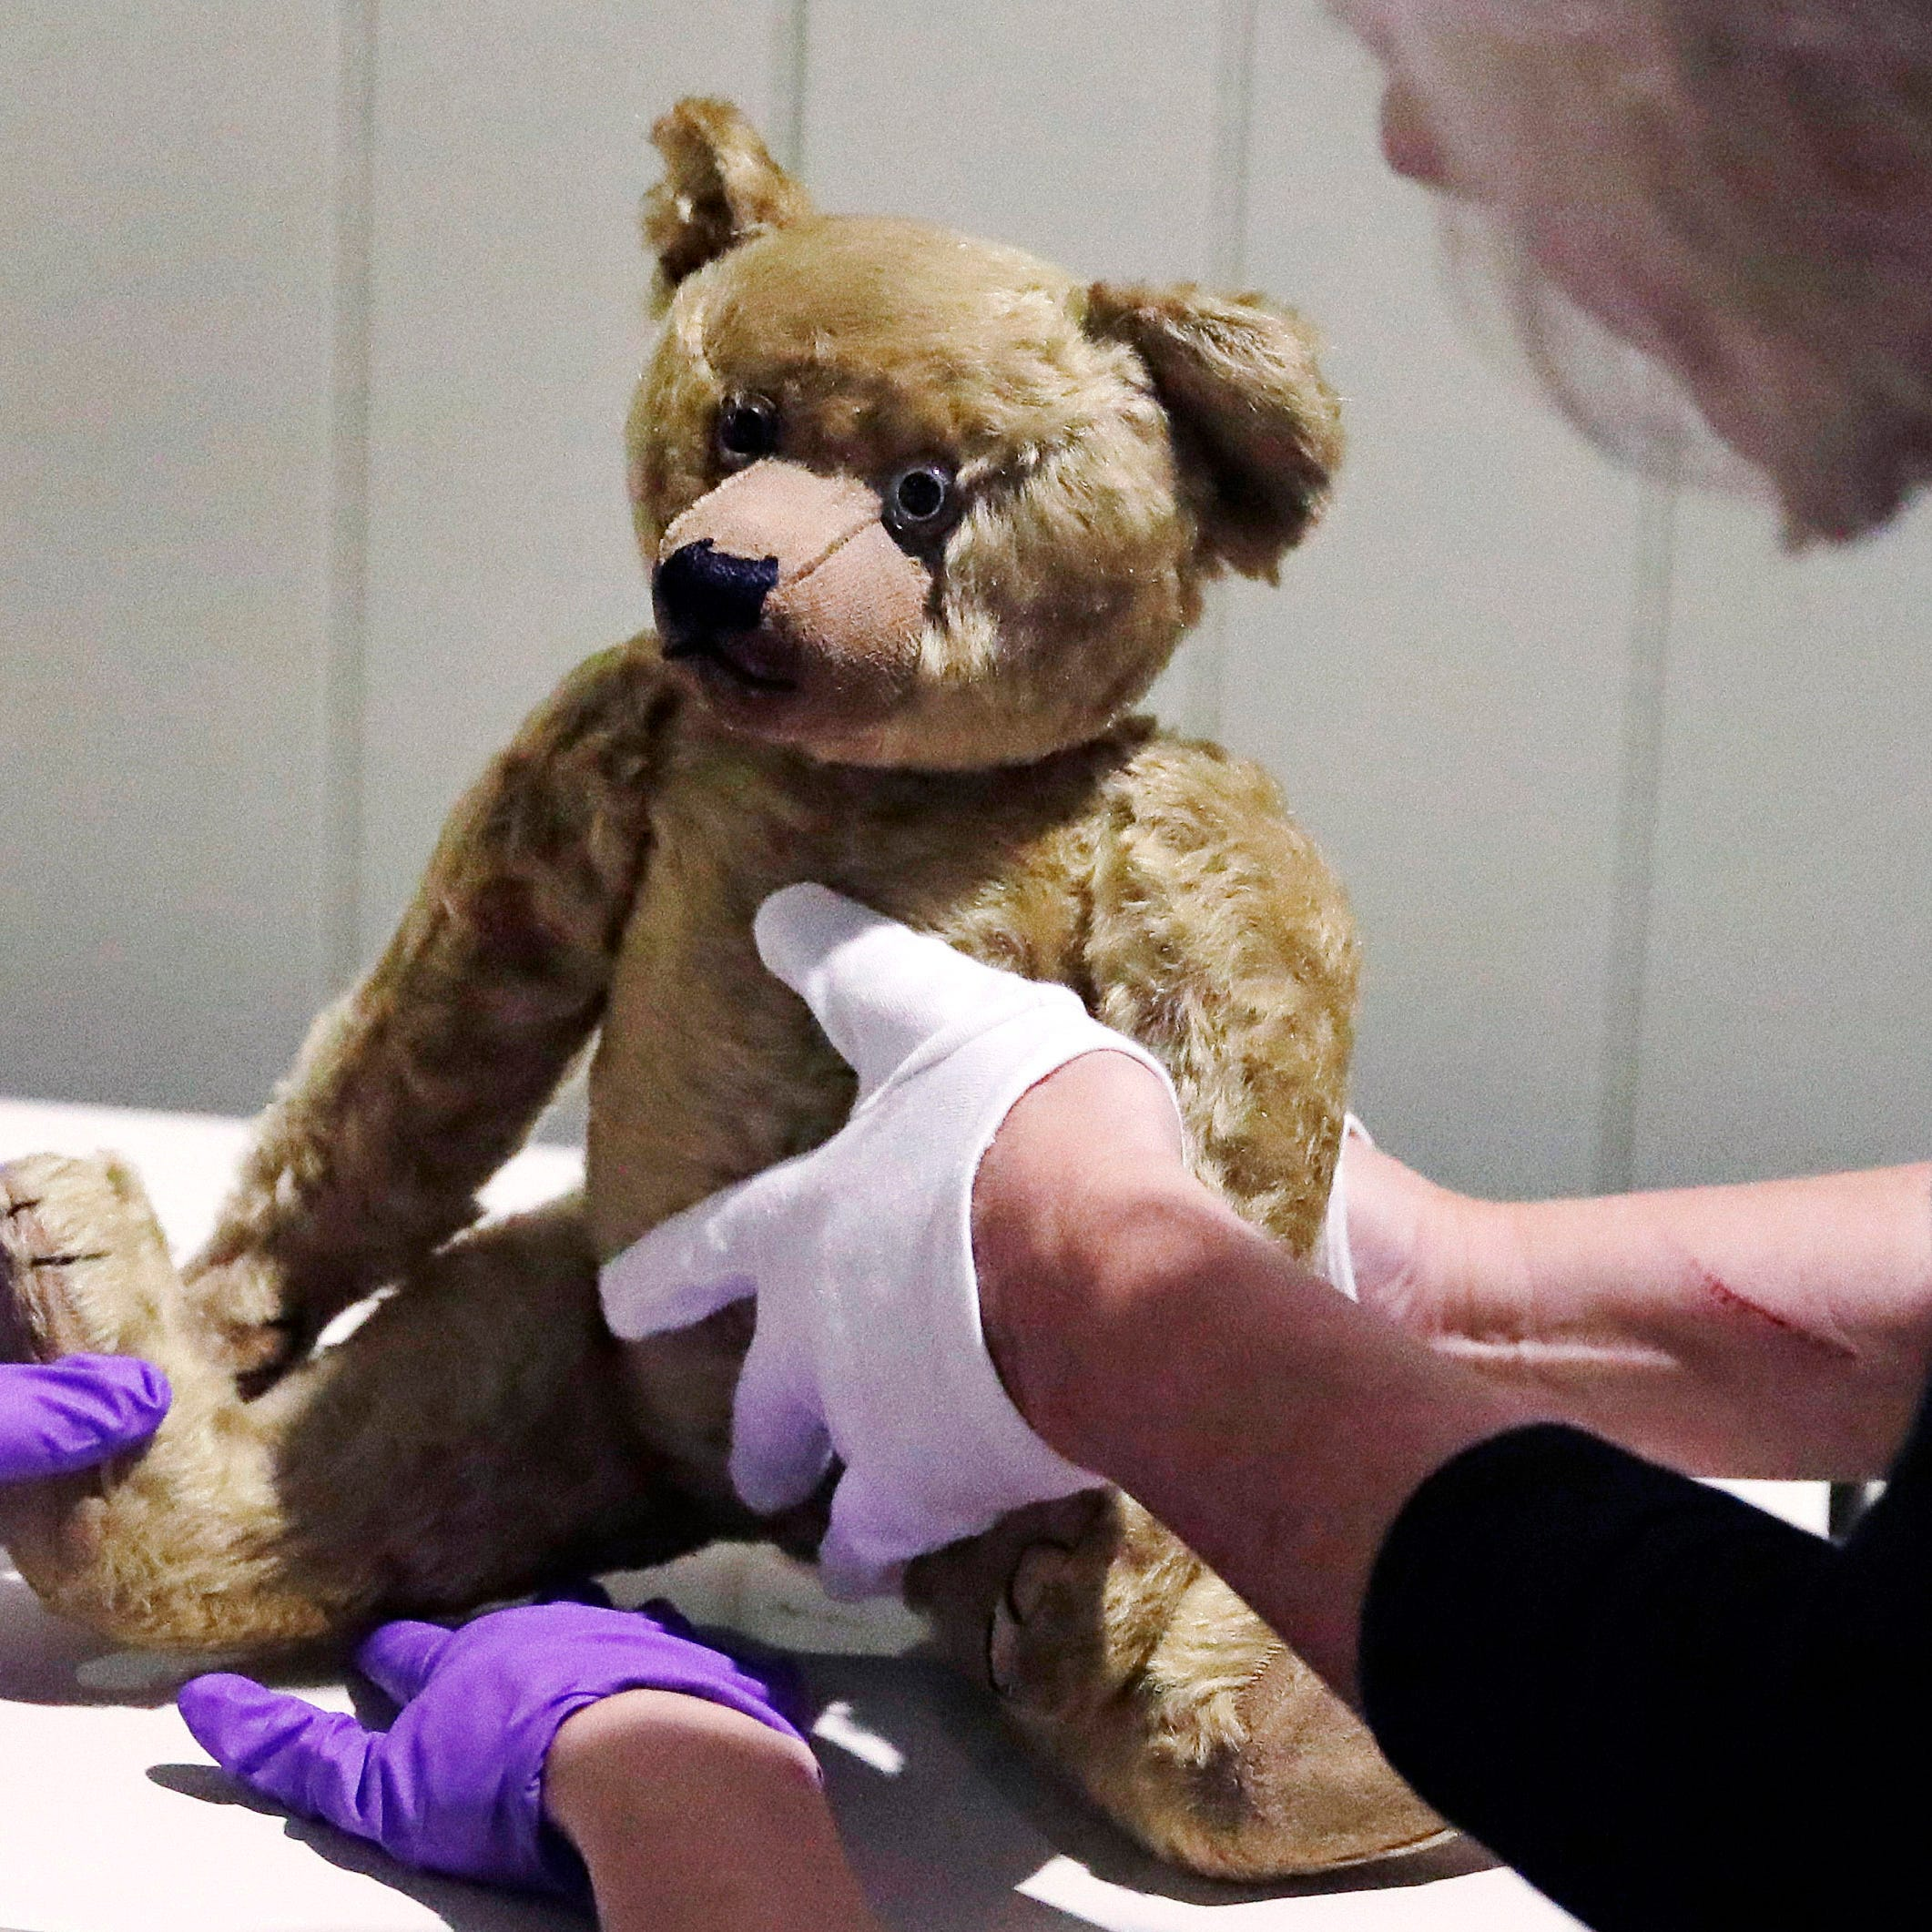 A bear in Boston: Winnie-the-Pooh gets his own museum exhibit at Museum of Fine Arts